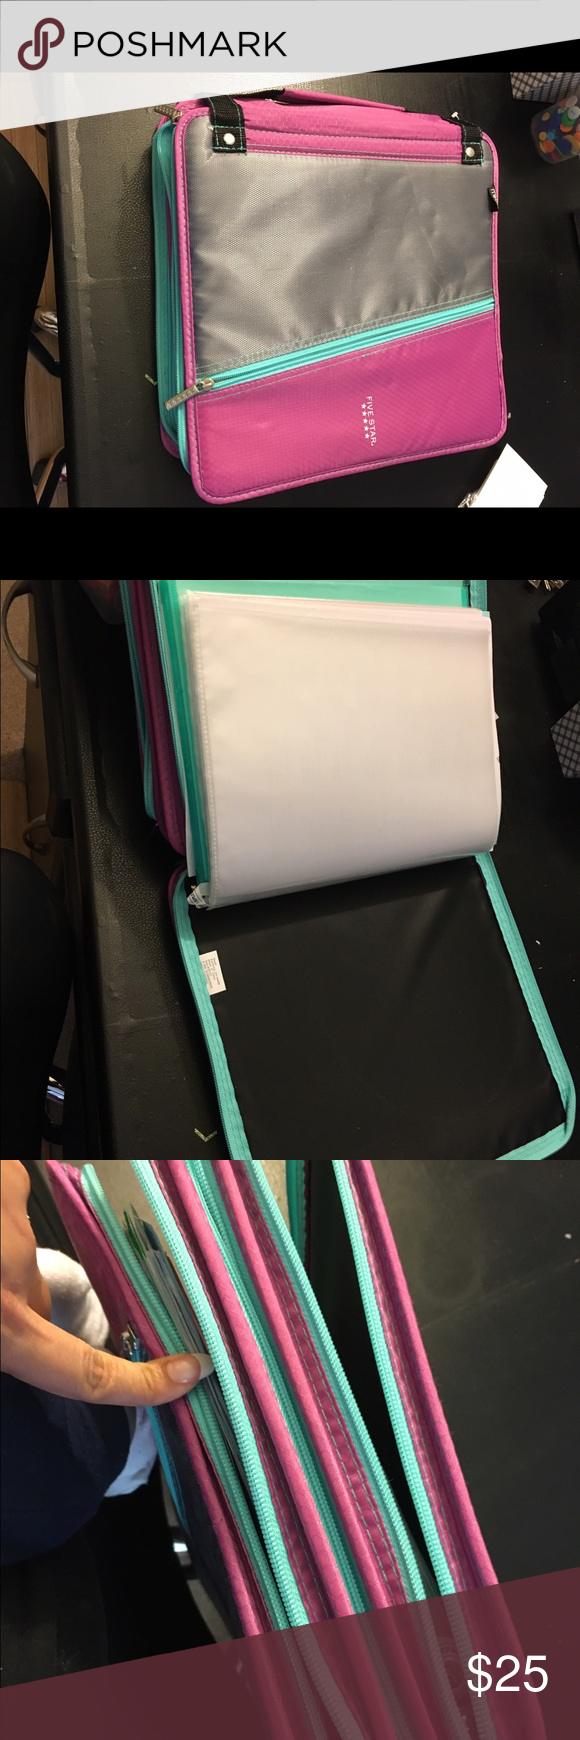 Couponing binder with baseball holders for coupons Couponing ...